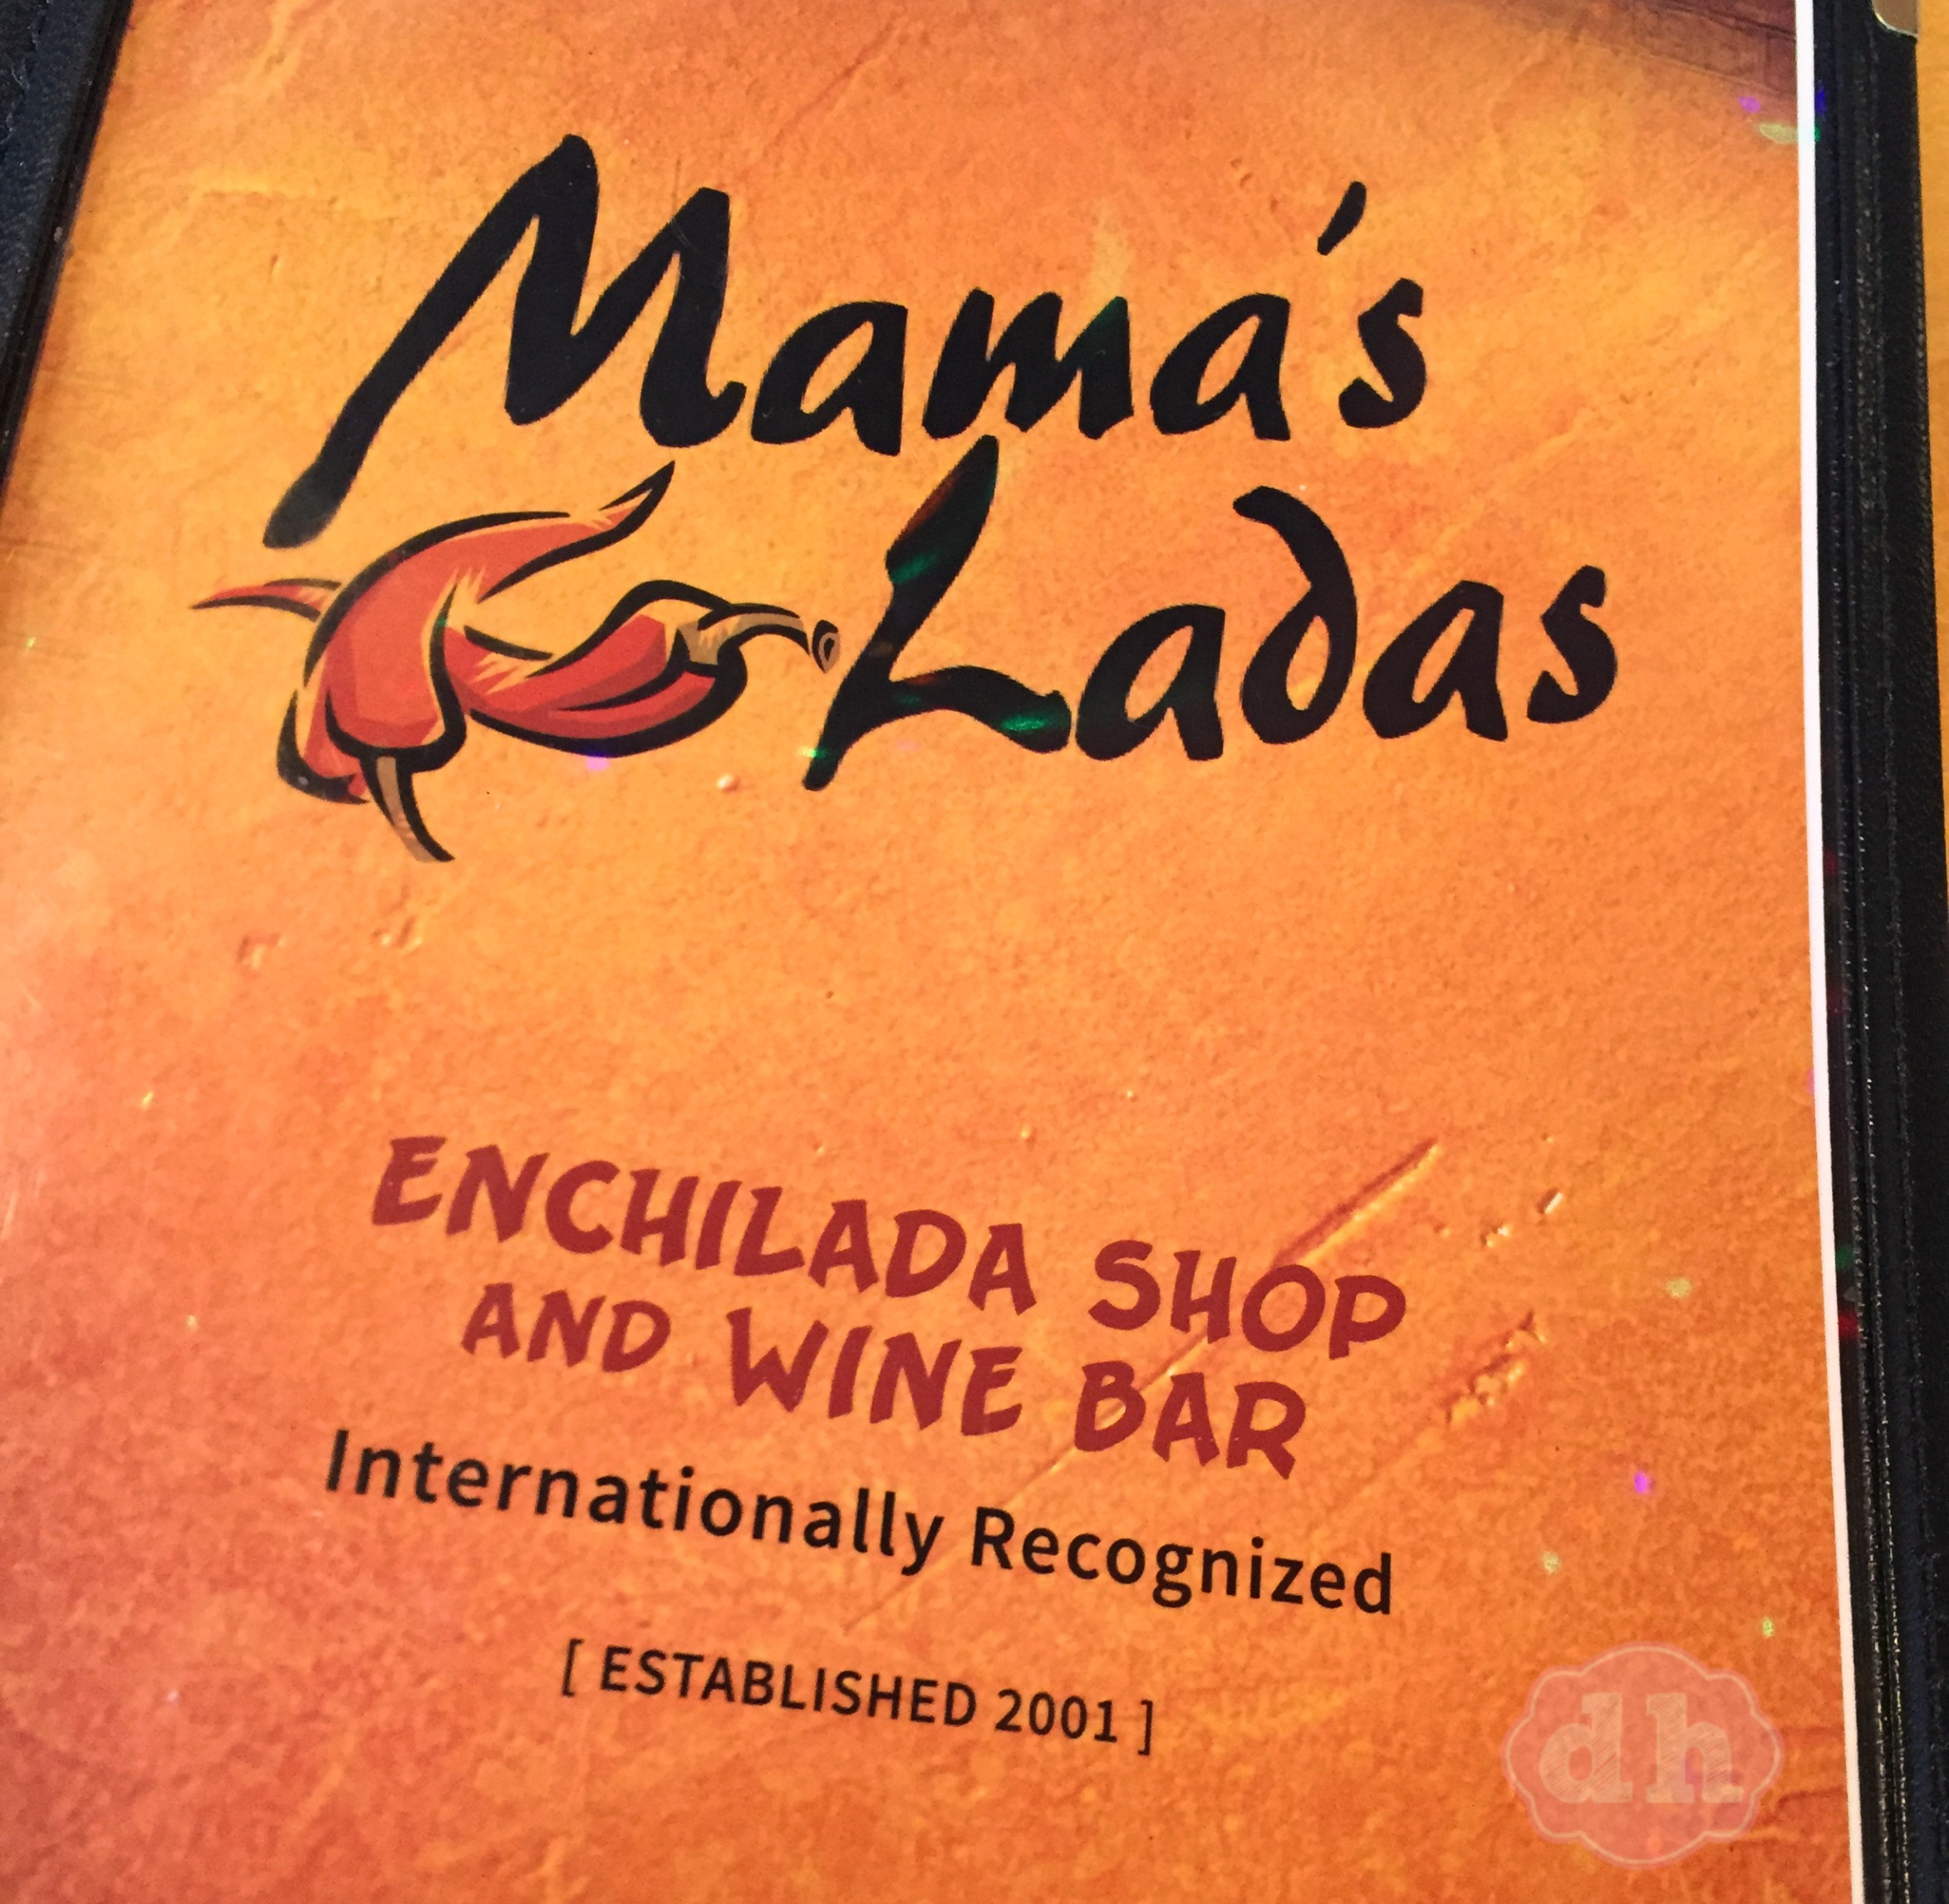 There's Only One thing on the Menu at Mama's Ladas